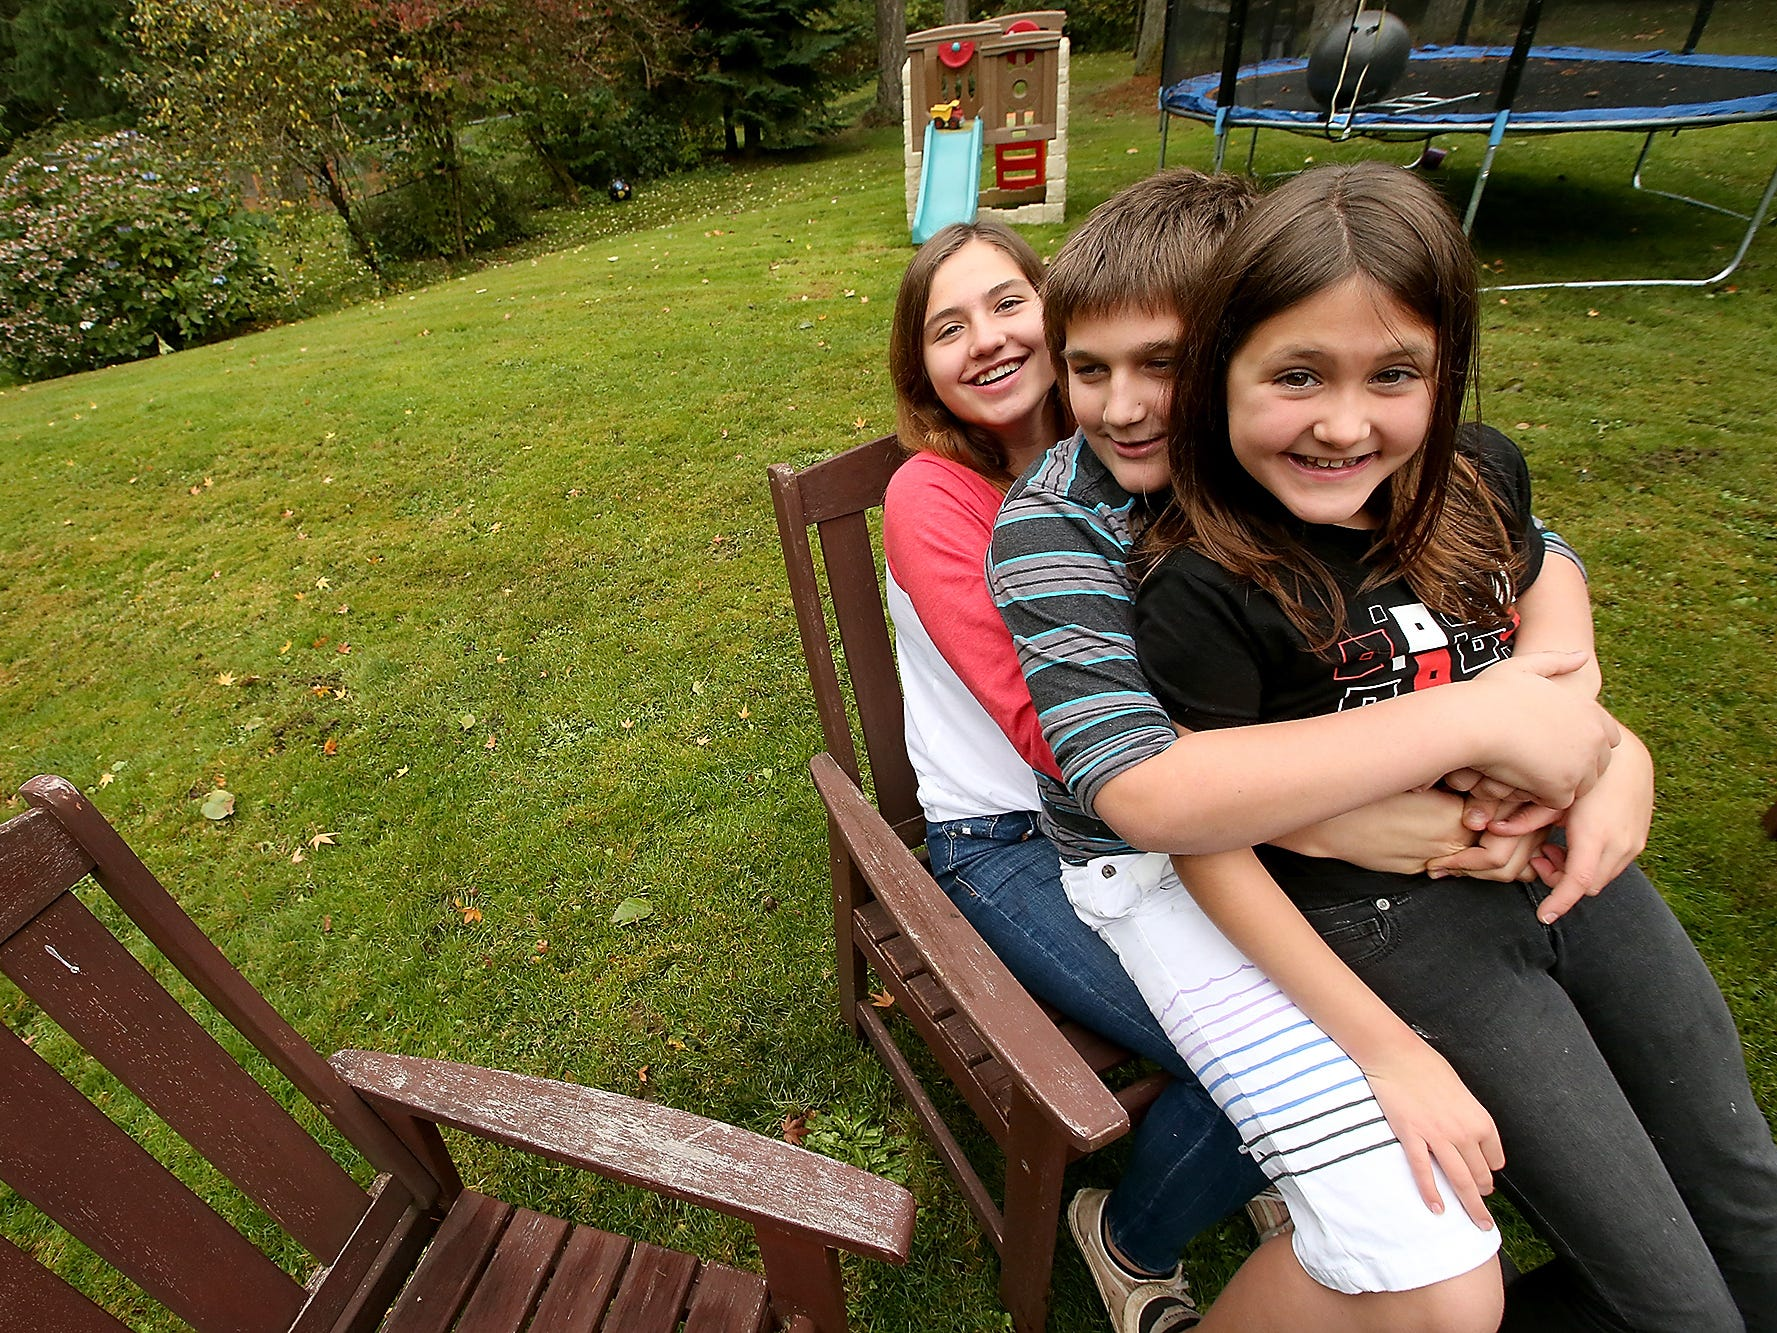 The Alcover siblings (back to front) Kylie, 15, Gavin, 11, and Phoenix, 9, jokingly sit in one chair for a portrait on Wednesday, November 14, 2018. The close-knit siblings from California lost their home in the Paradise fire and are staying with family friends Amber and Douglas Shaw in Suquamish, Washington while their parents work things out in California.